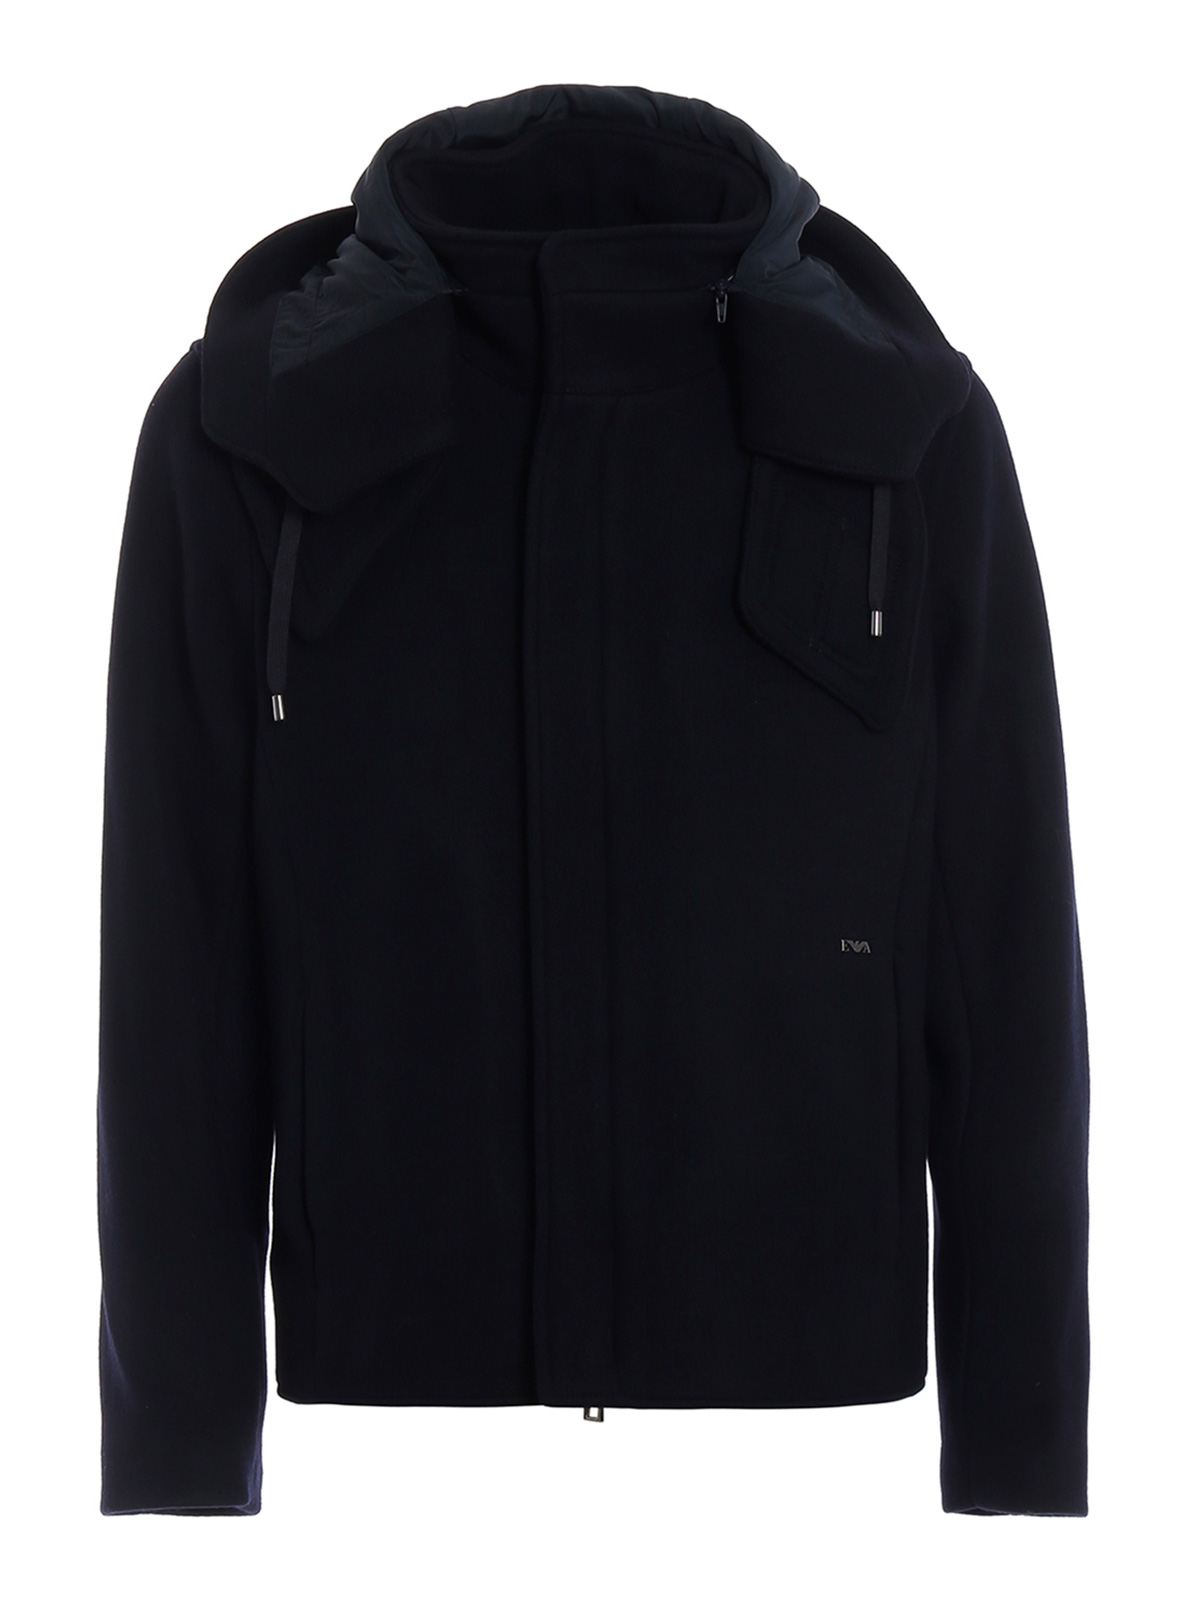 Picture of EMPORIO ARMANI | Men's Wool Hooded Jacket